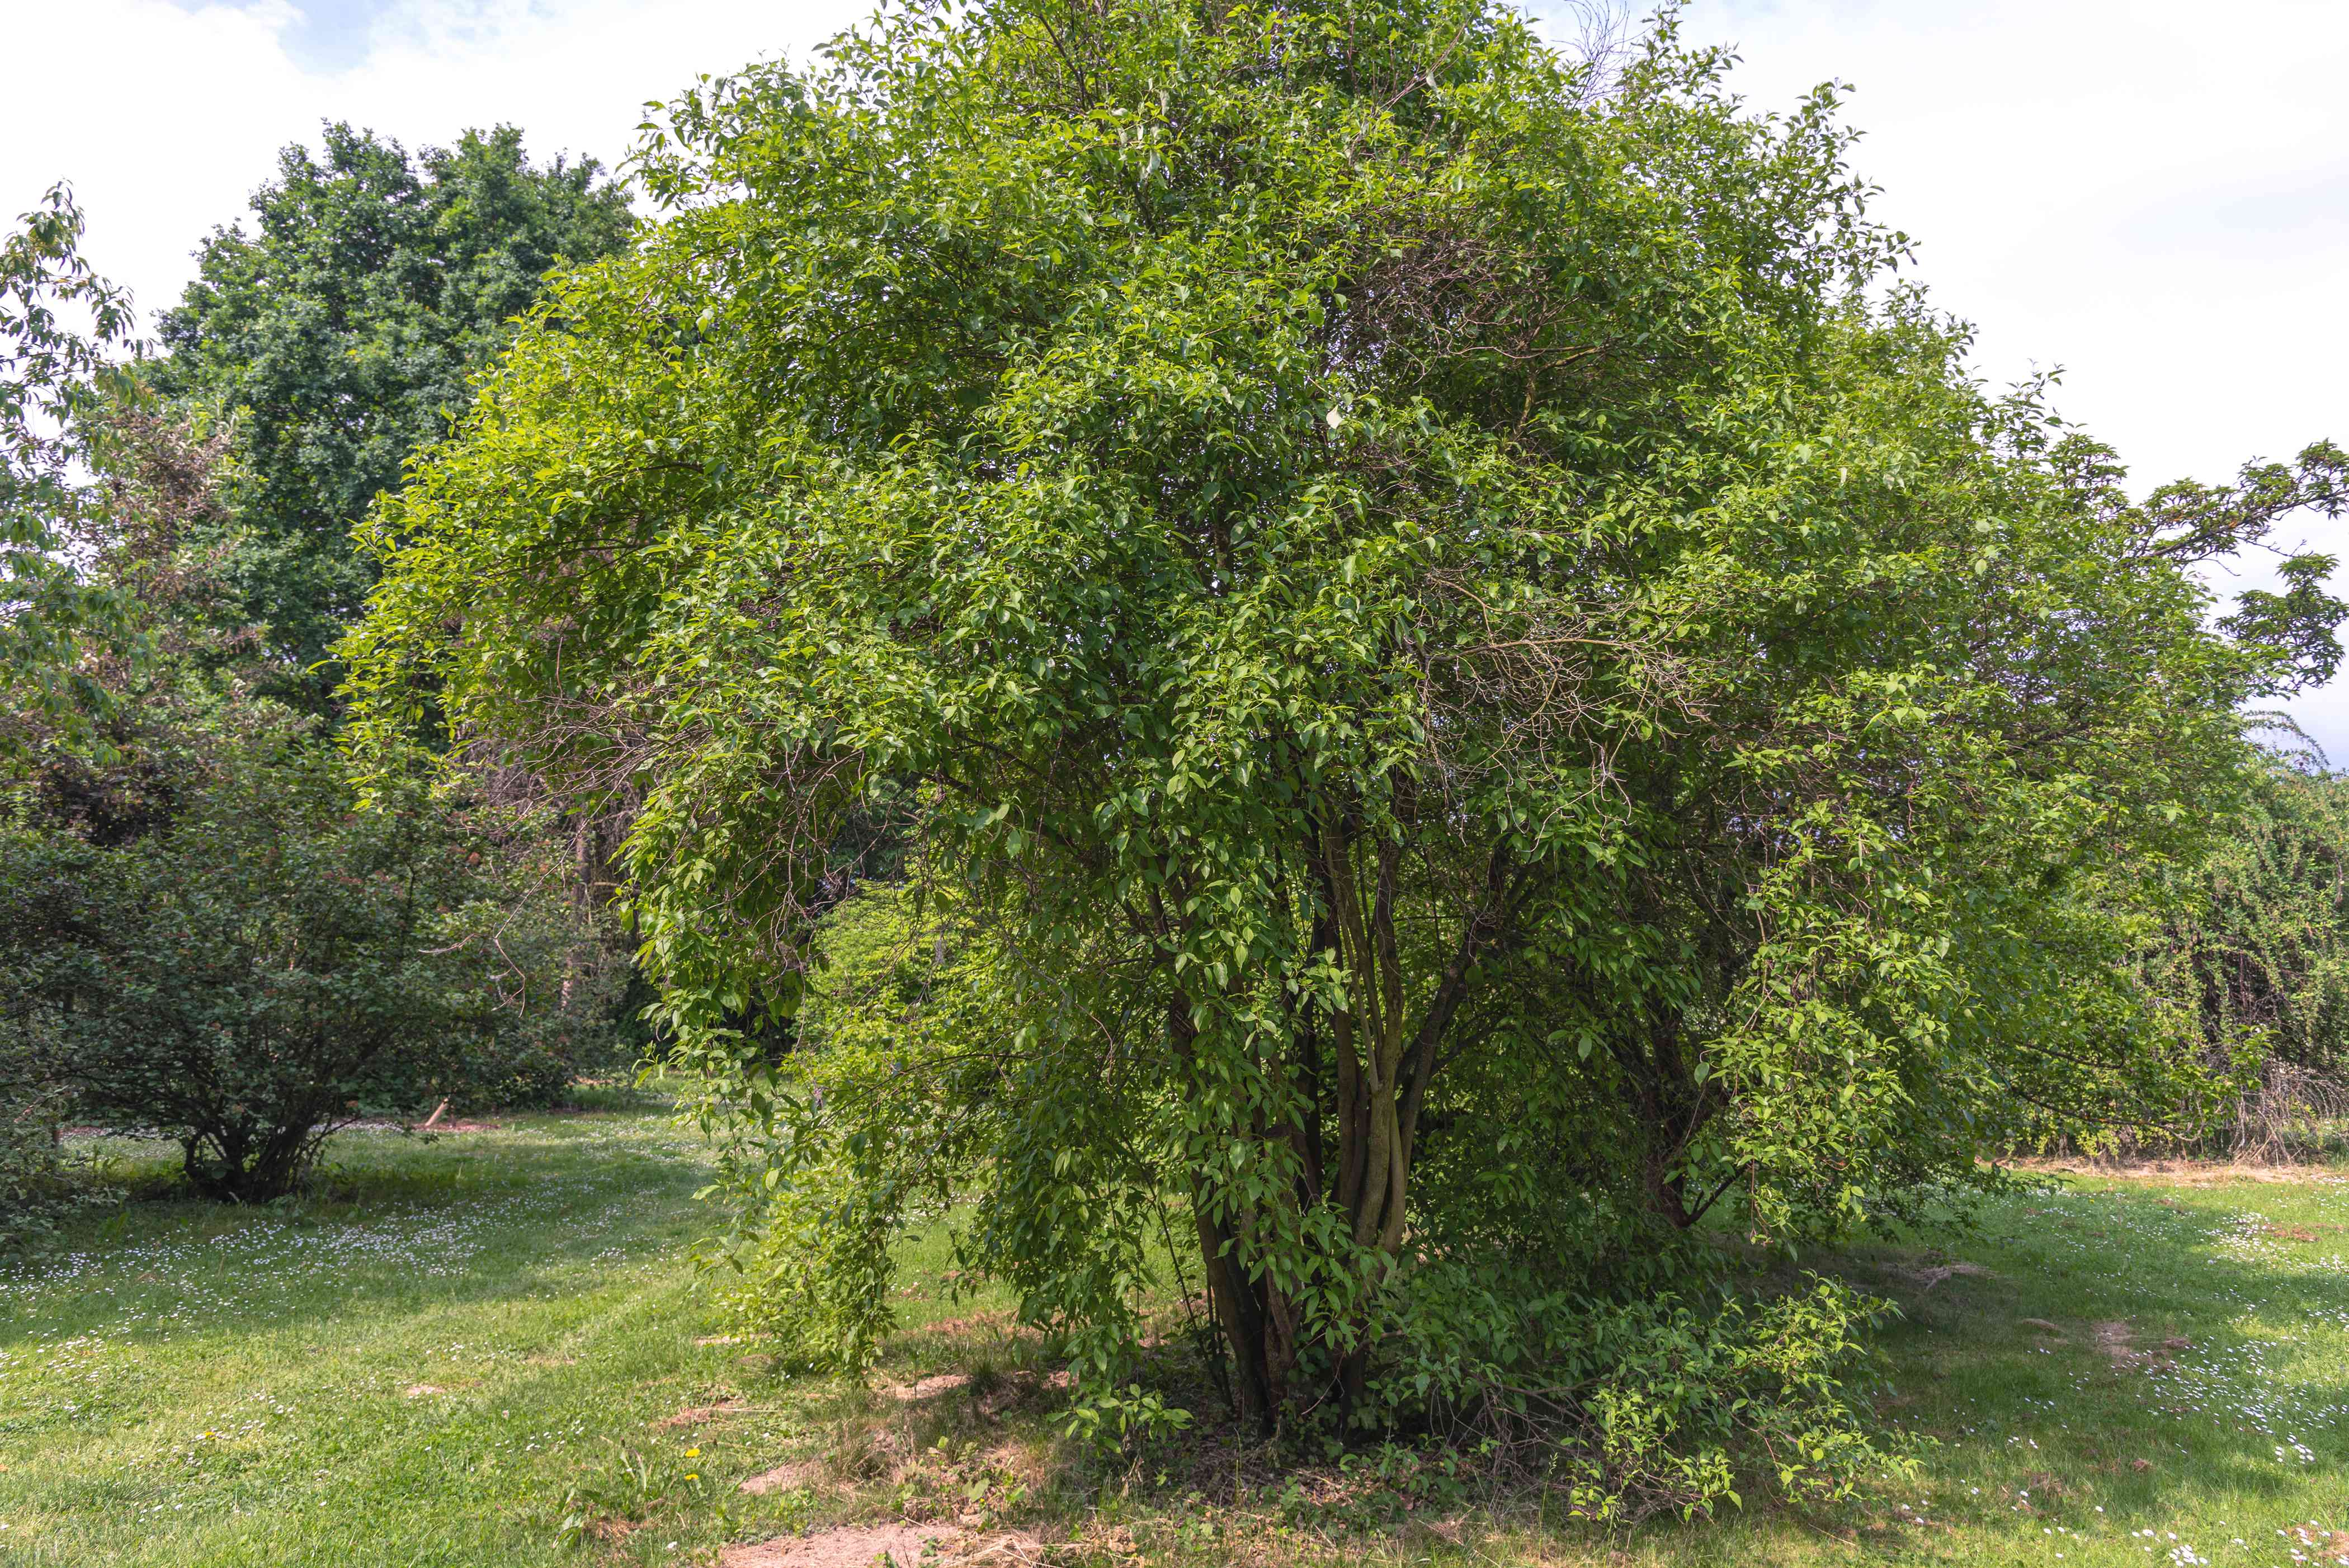 Gray dogwood native shrub with extending branches